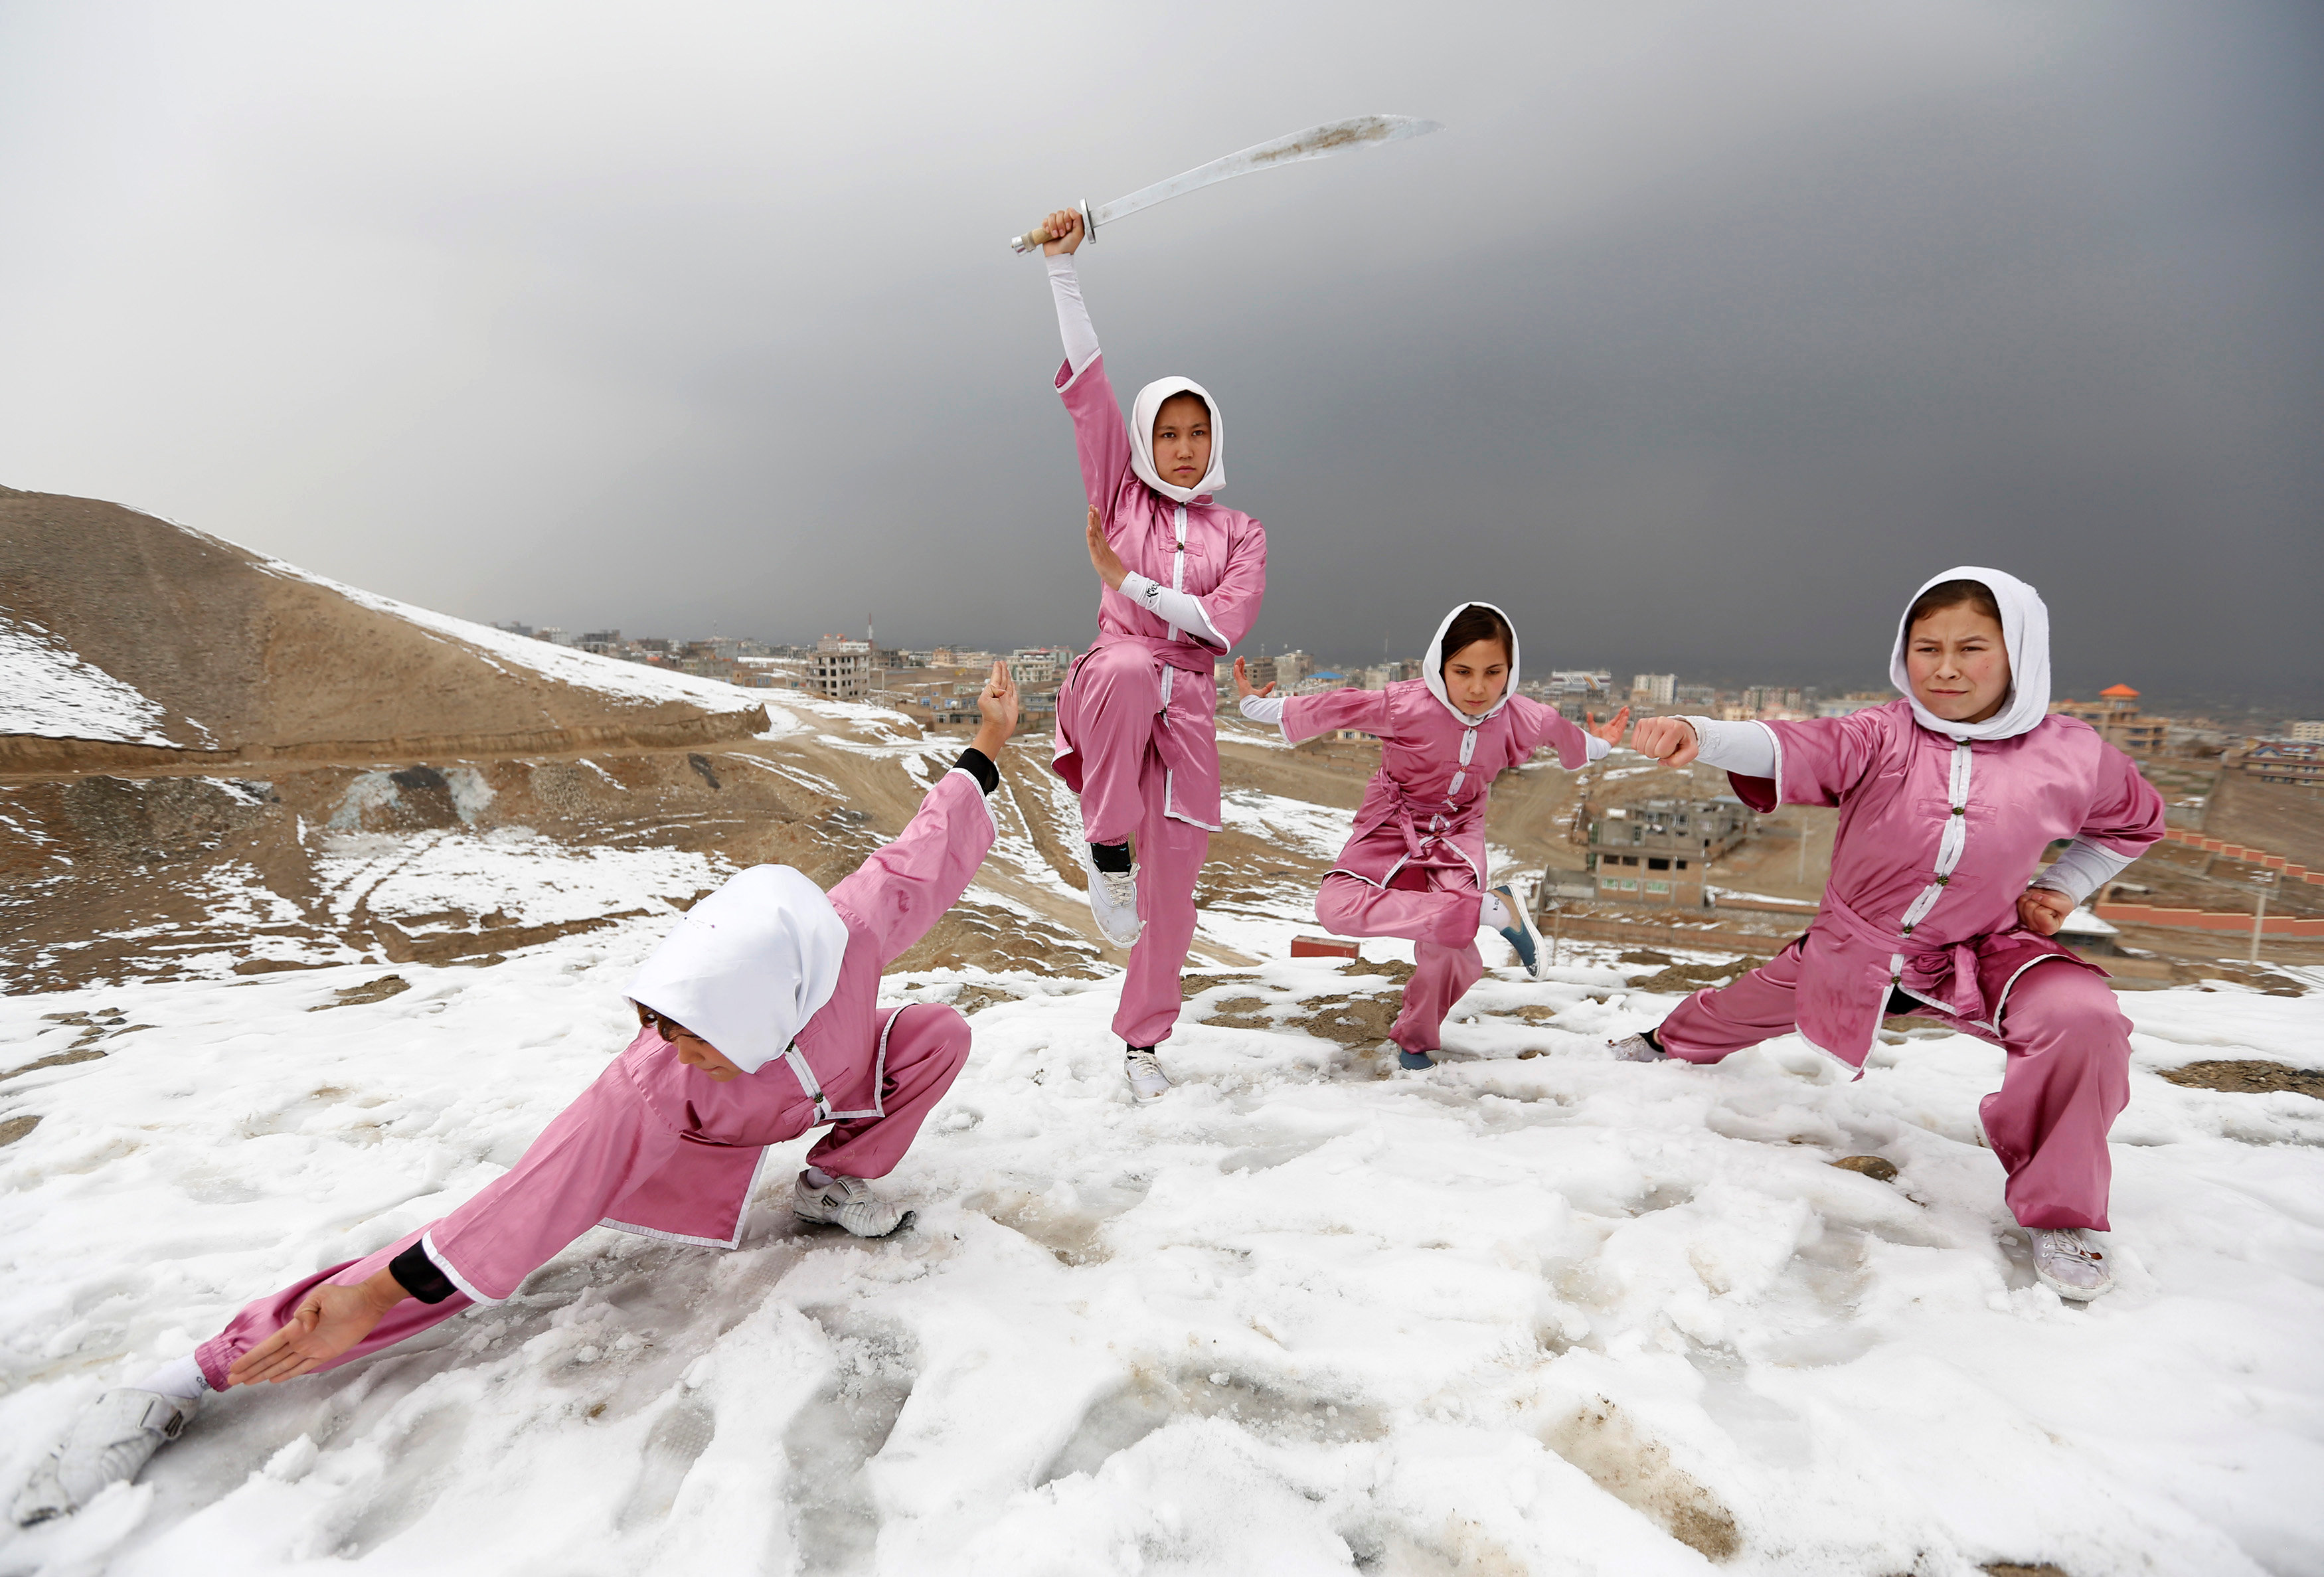 Hanifa Doosti (C), 17,  and other students of the Shaolin Wushu club show their Wushu skills to other students on a hilltop in Kabul, Afghanistan January 29, 2017. REUTERS/Mohammad Ismail